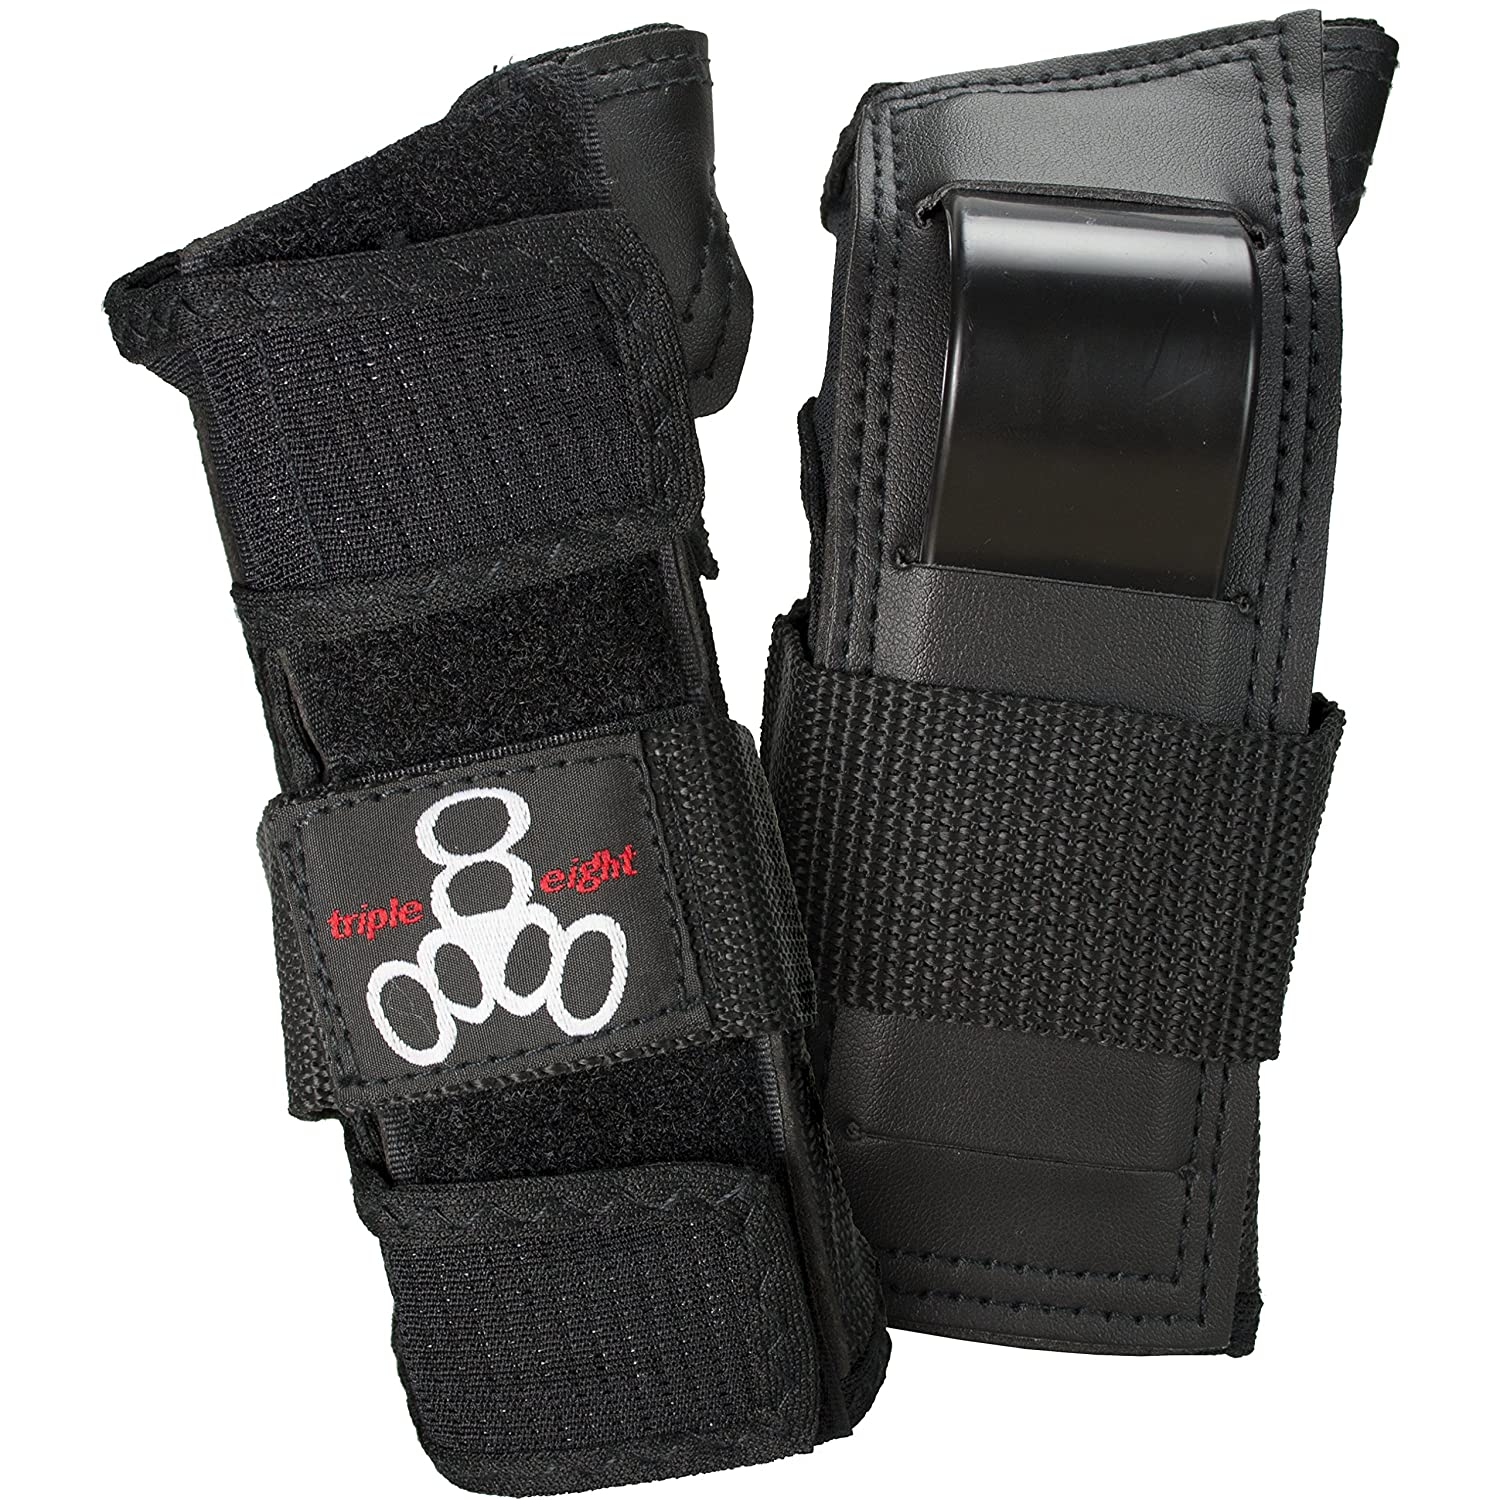 best skateboarding wrist guards